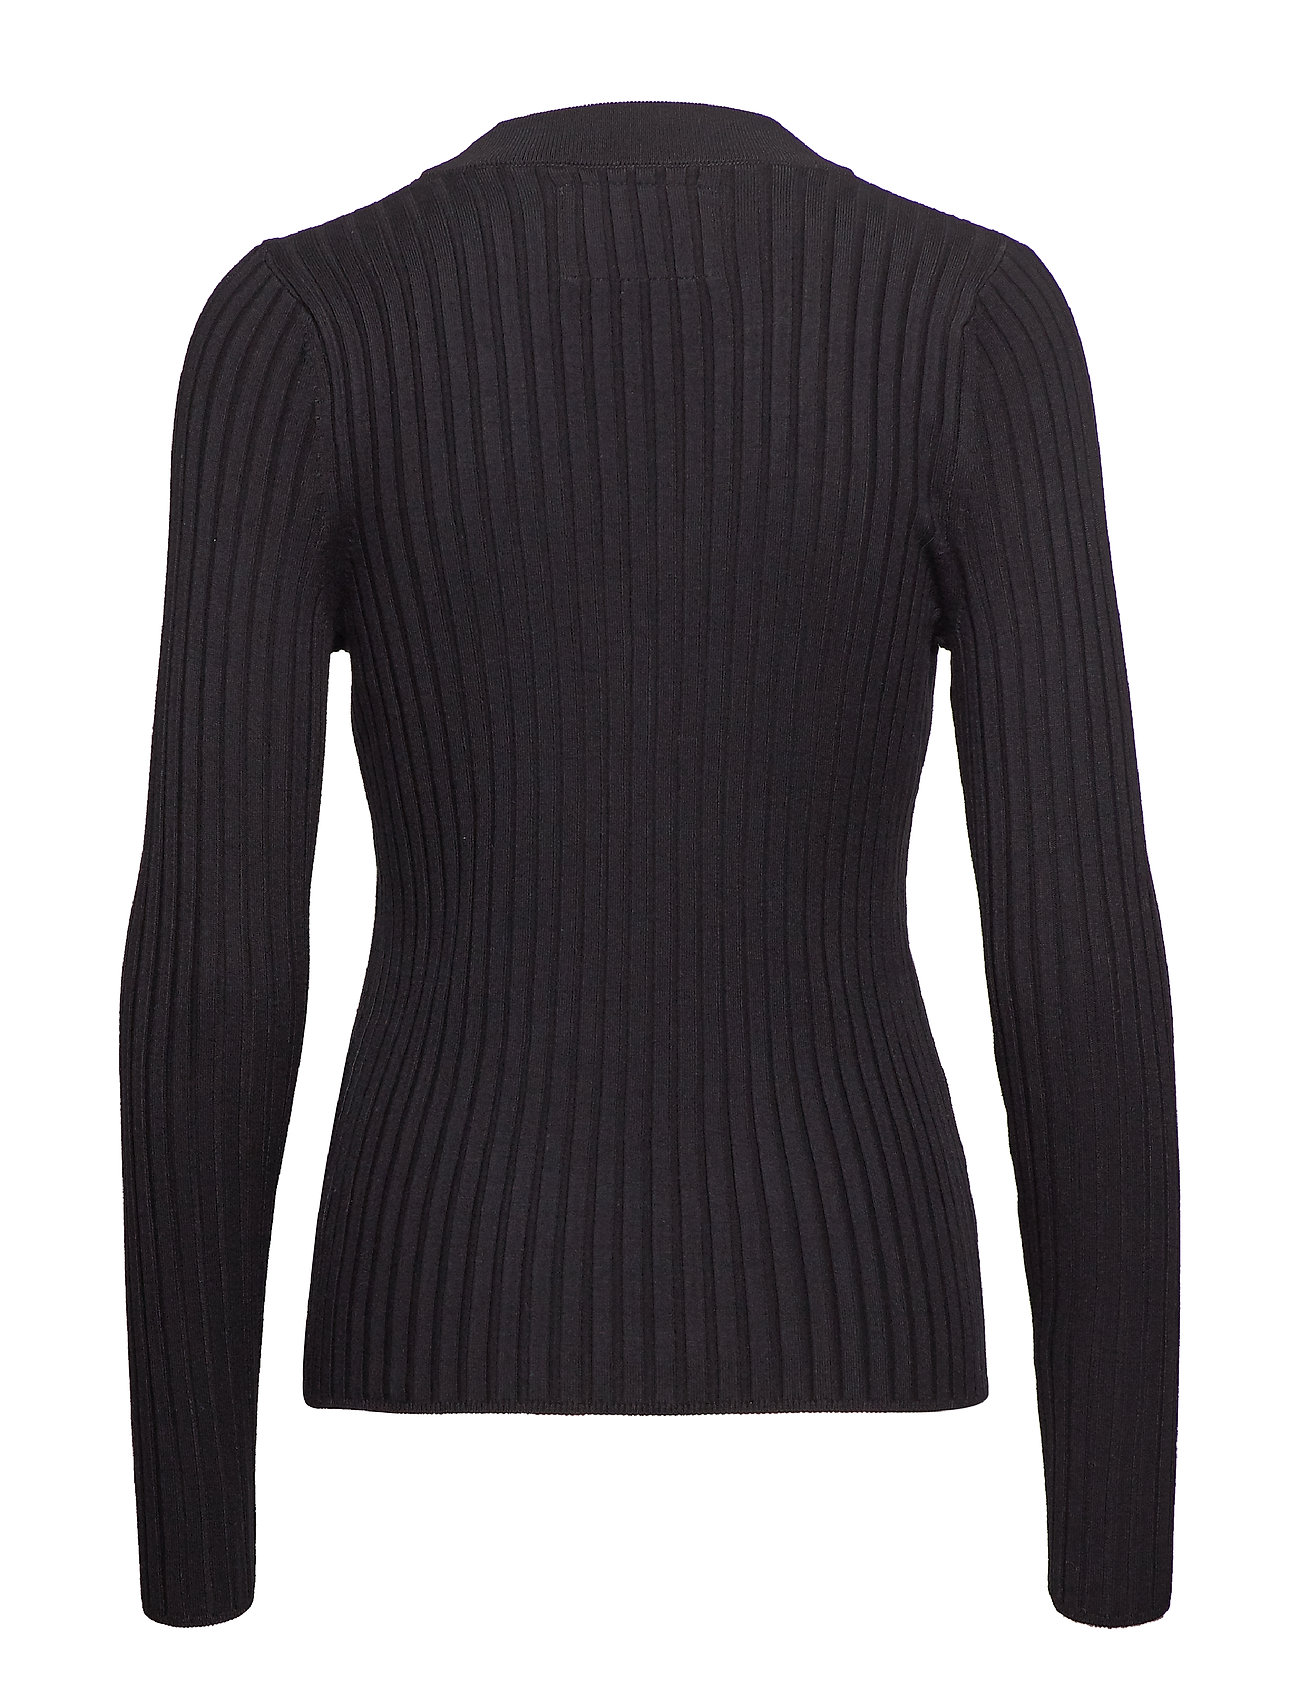 Lola Buttoned Vee Vee Buttoned KnitblackSuperdry KnitblackSuperdry Lola Lola Buttoned iPuTOZwkXl